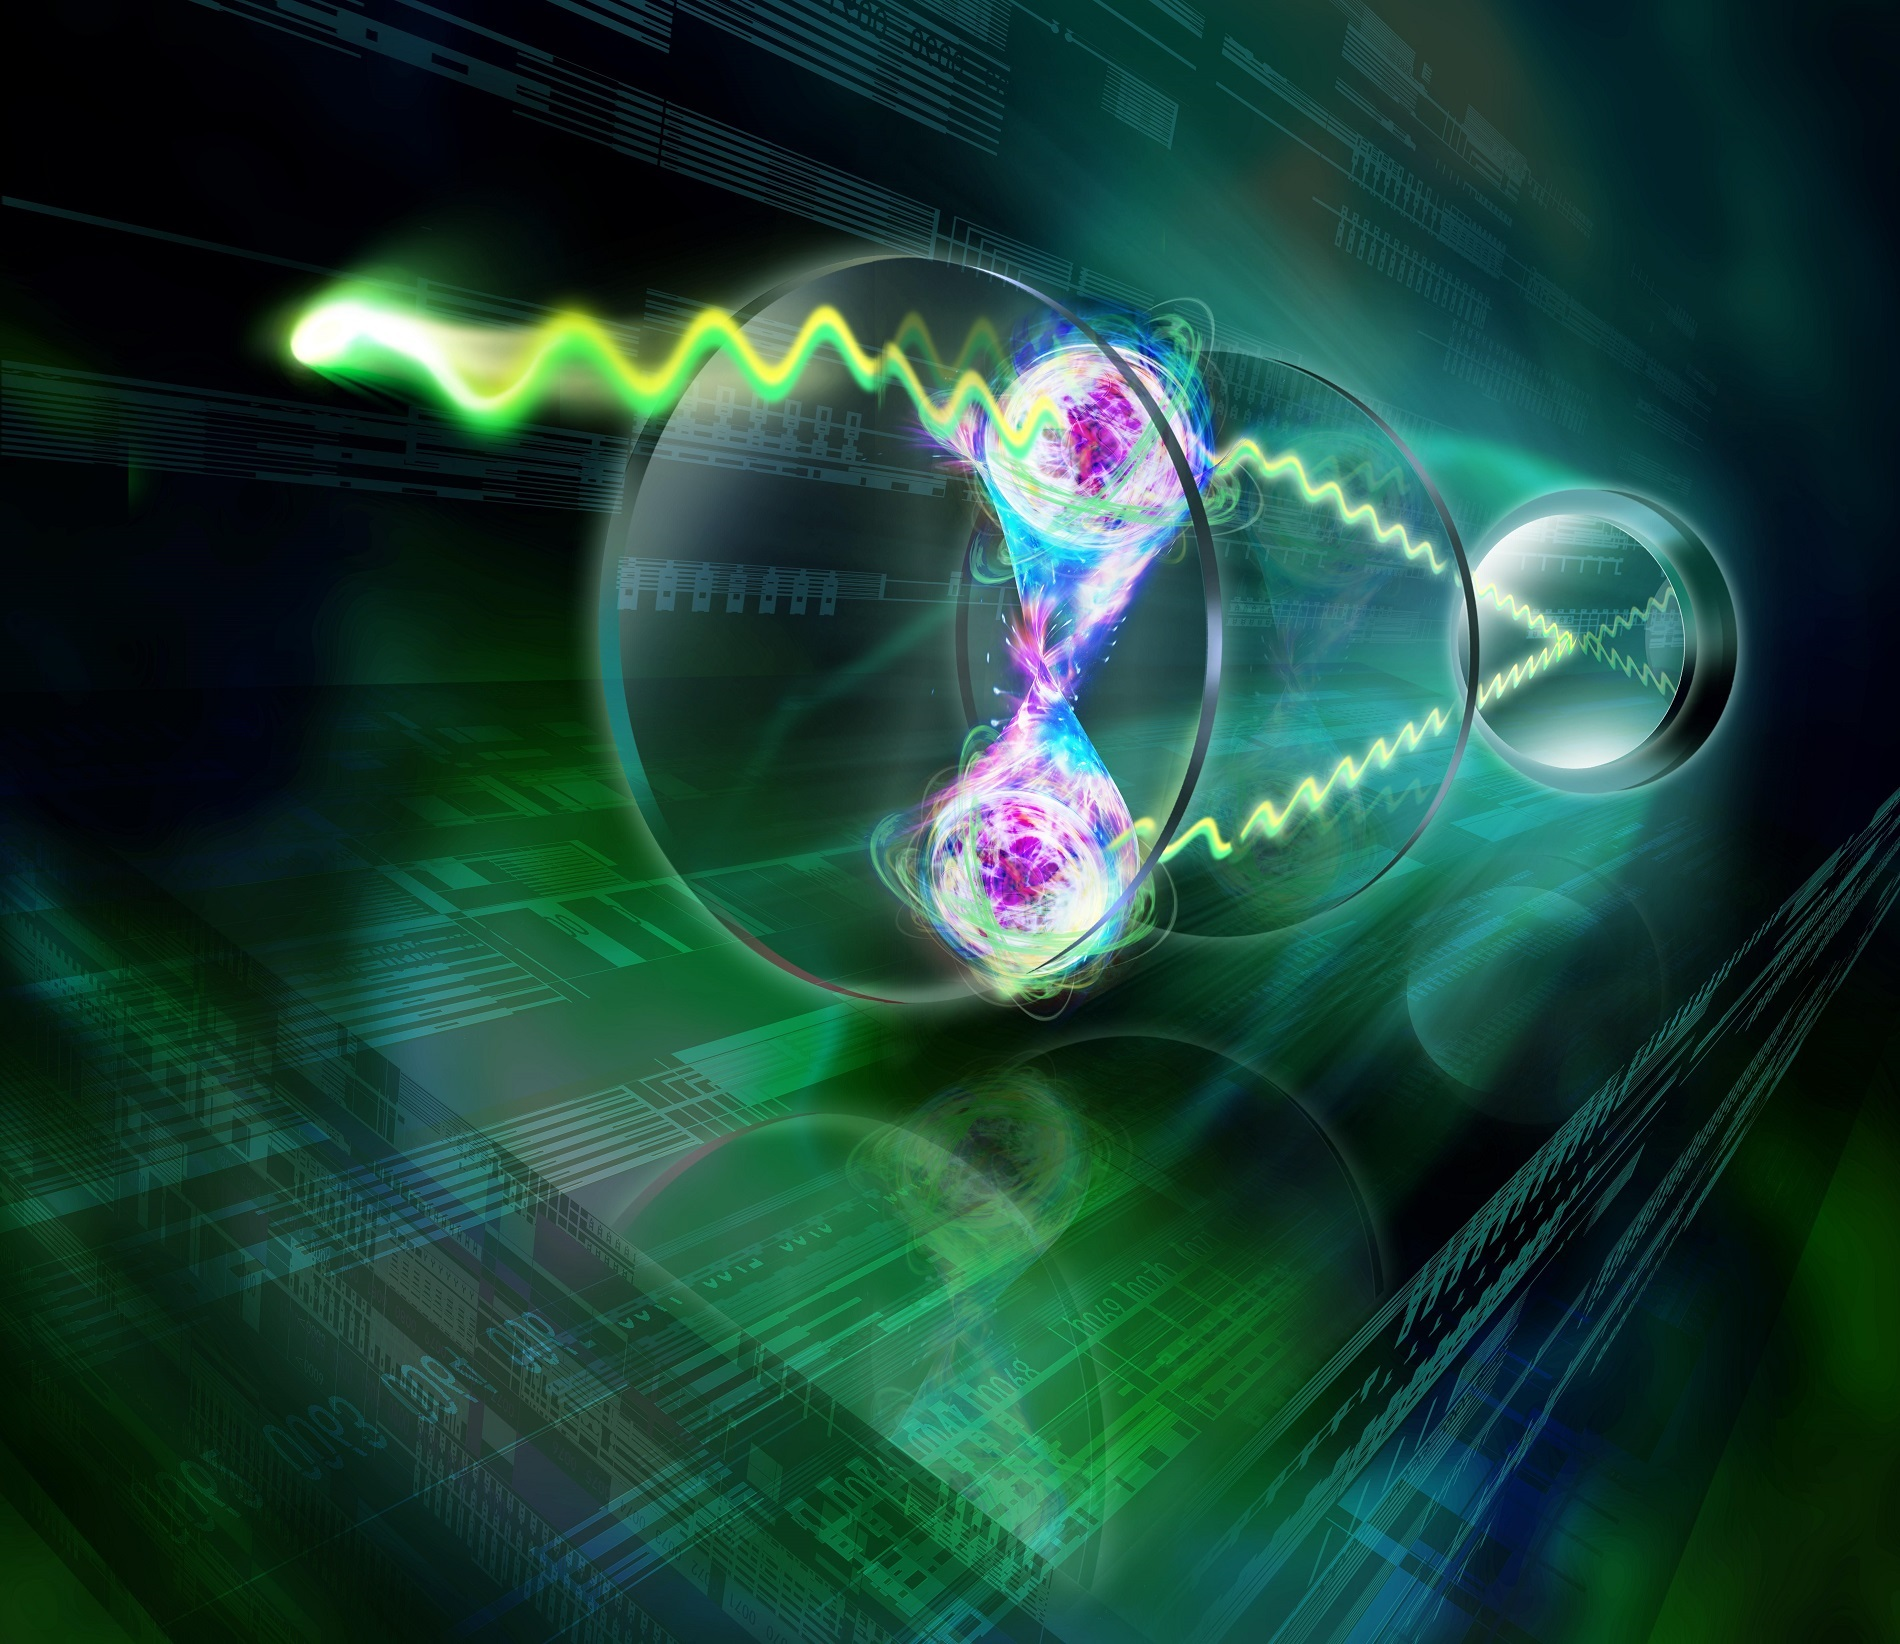 Physicists compared the photon interference produced by entangled and non-entangled barium atoms